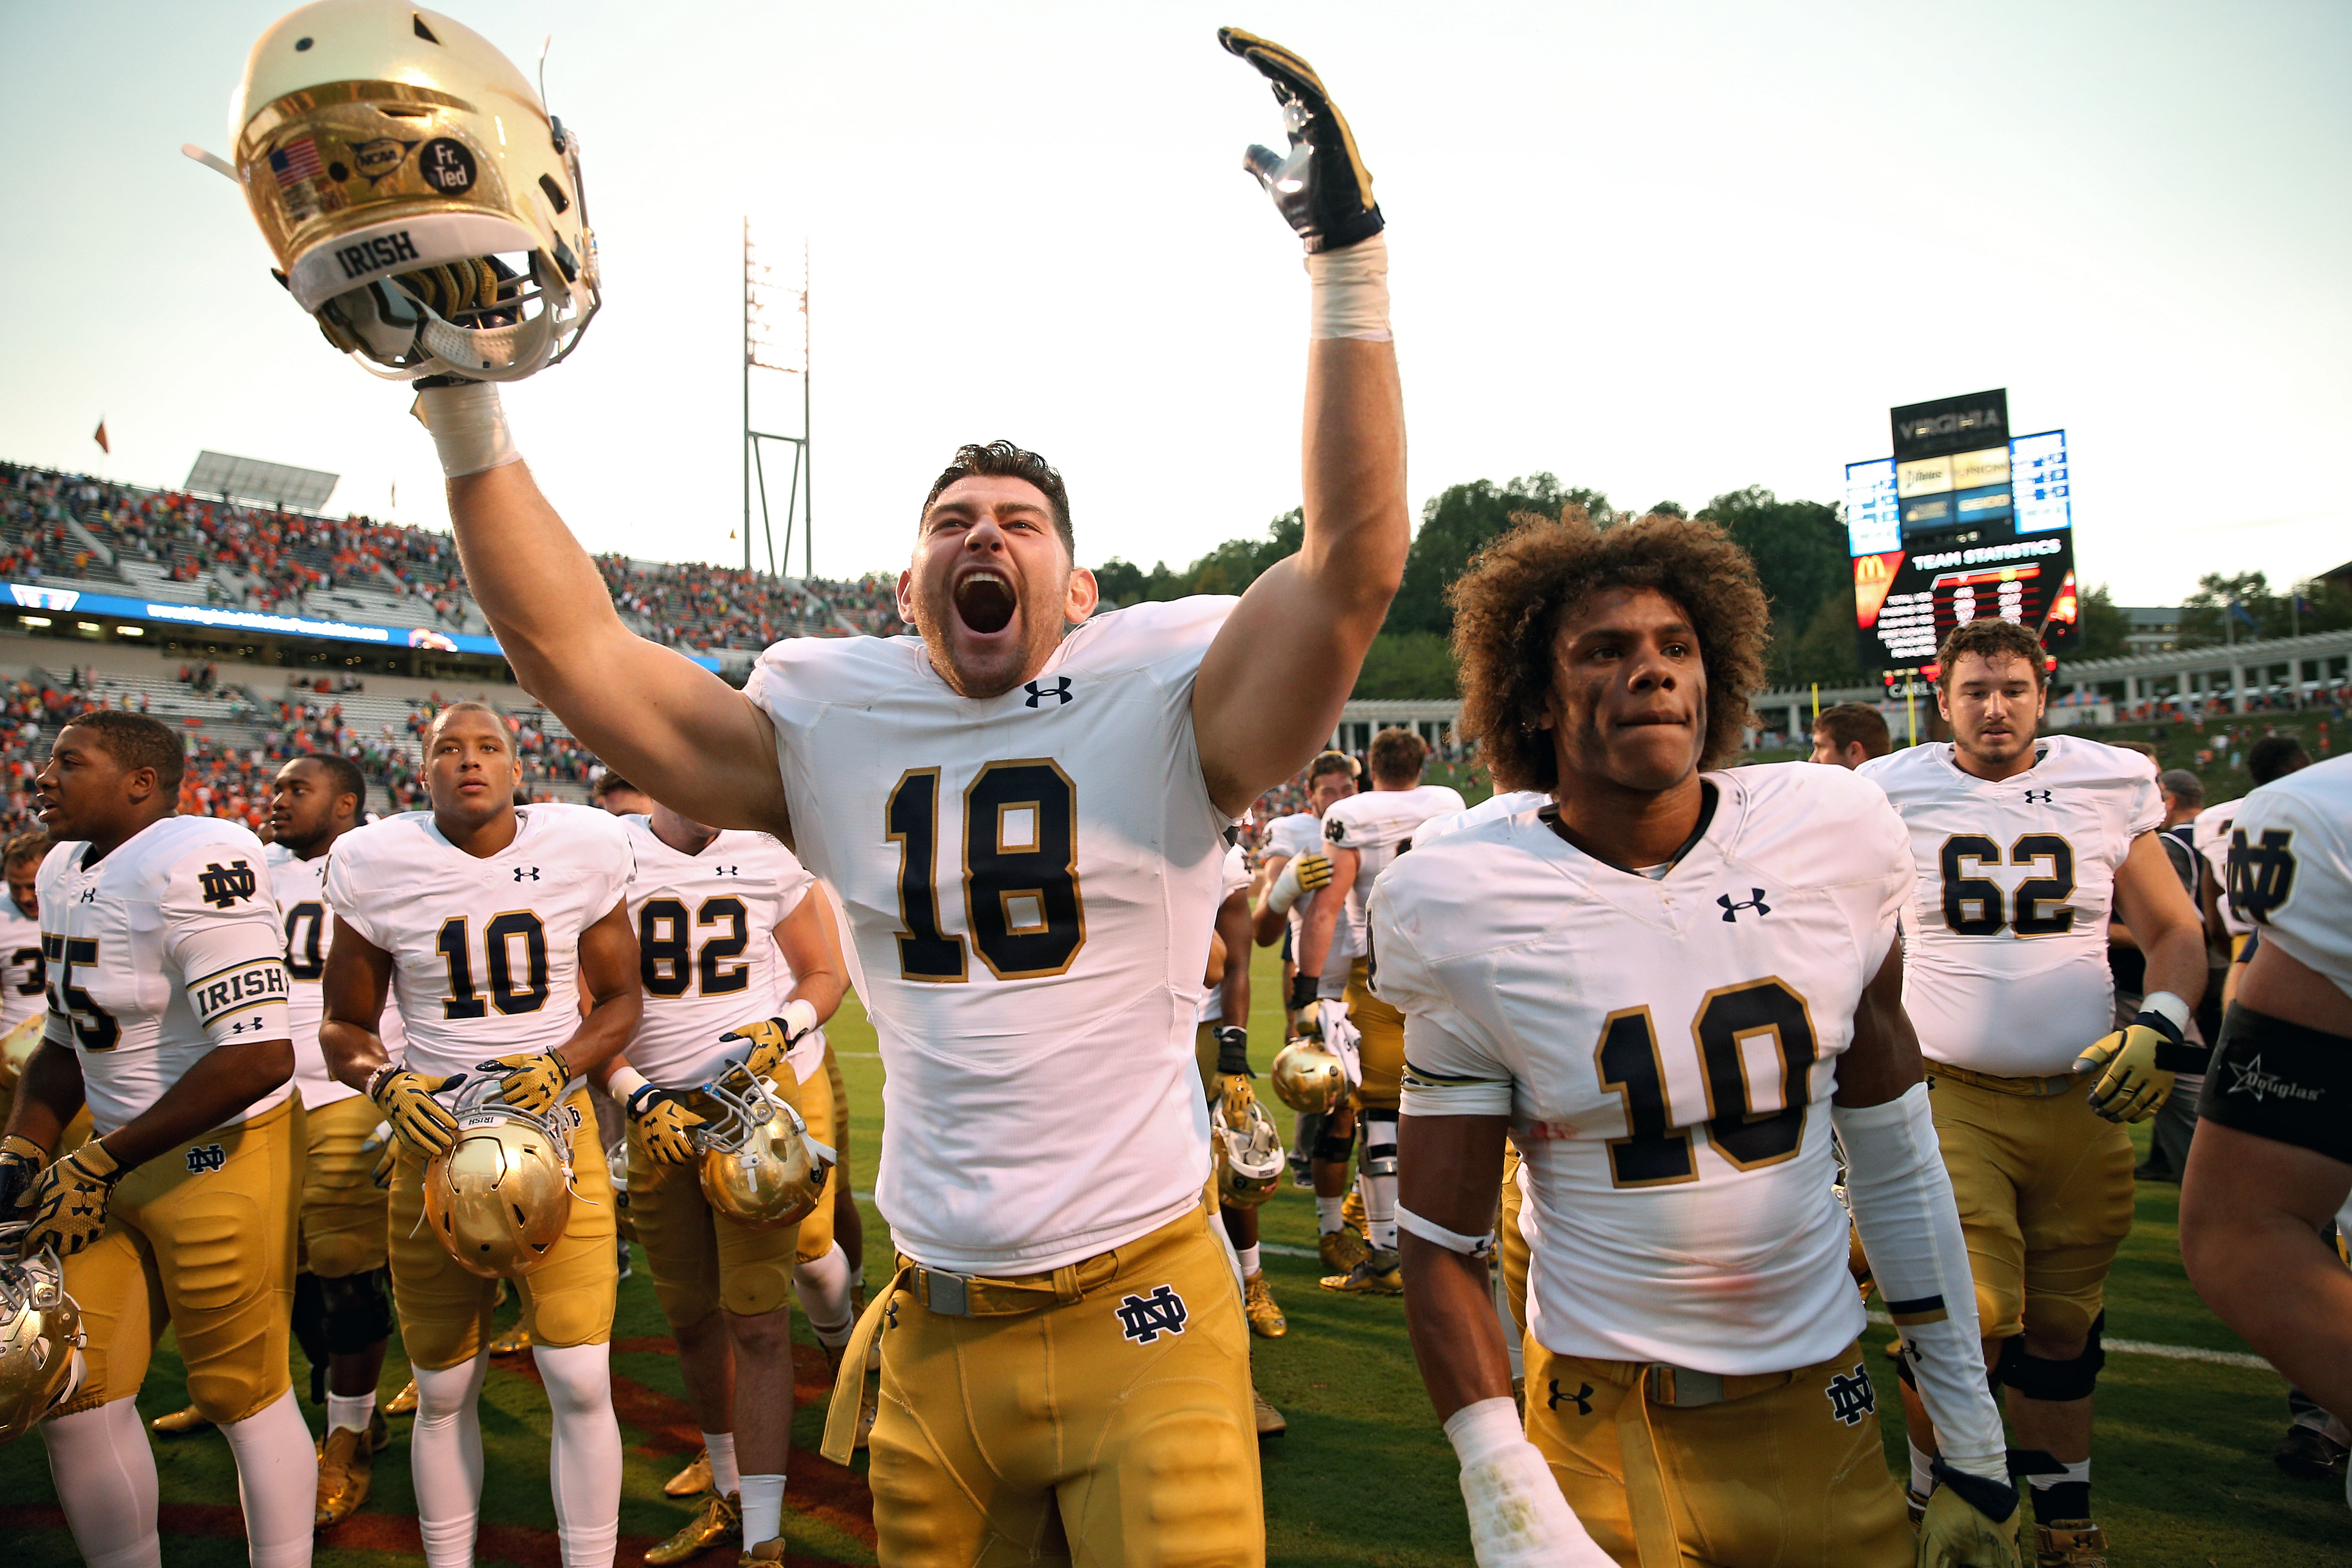 CHARLOTTESVILLE, VA - SEPTEMBER 12: Chase Hounshell #18 of the Notre Dame Fighting Irish and teammates celebrate after defeating the Virginia Cavaliers at Scott Stadium on September 12, 2015 in Charlottesville, Virginia. The Notre Dame Fighting Irish won, 34-27. (Photo by Patrick Smith/Getty Images)